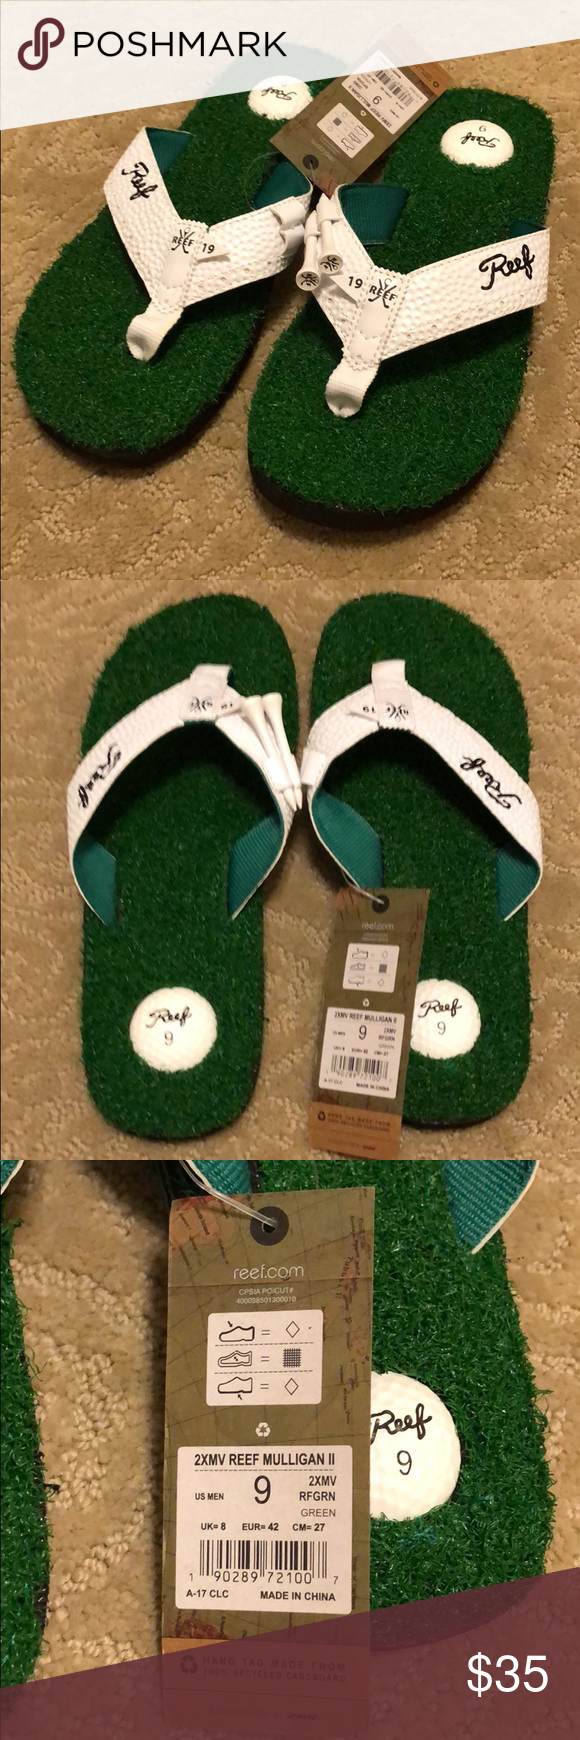 36751819ea67e REEF Mulligan Sandals. Men s size 9. New. Brand new Reef Sandals for the  golf lover. Bottle opener on the sole. Tee holders on top.